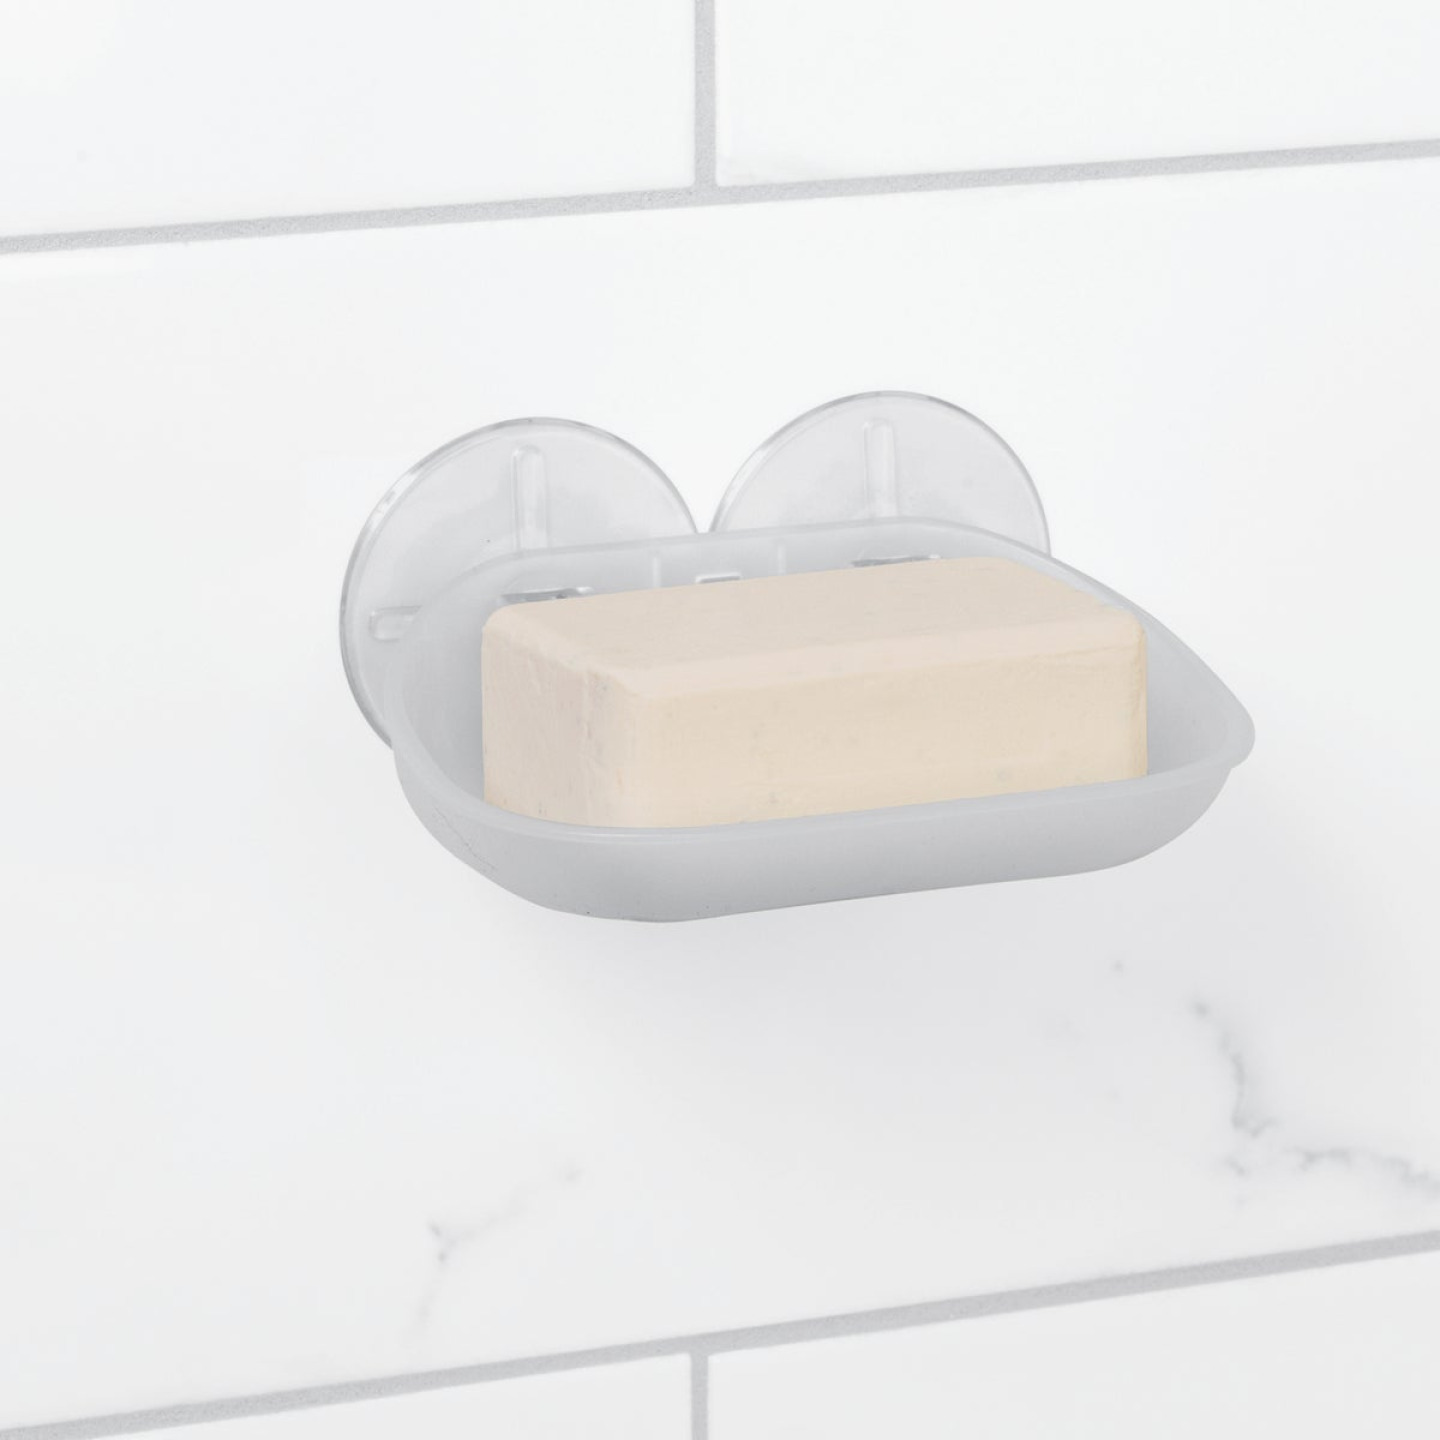 Zenna Home Frosted Finish Suction Soap Dish Image 1